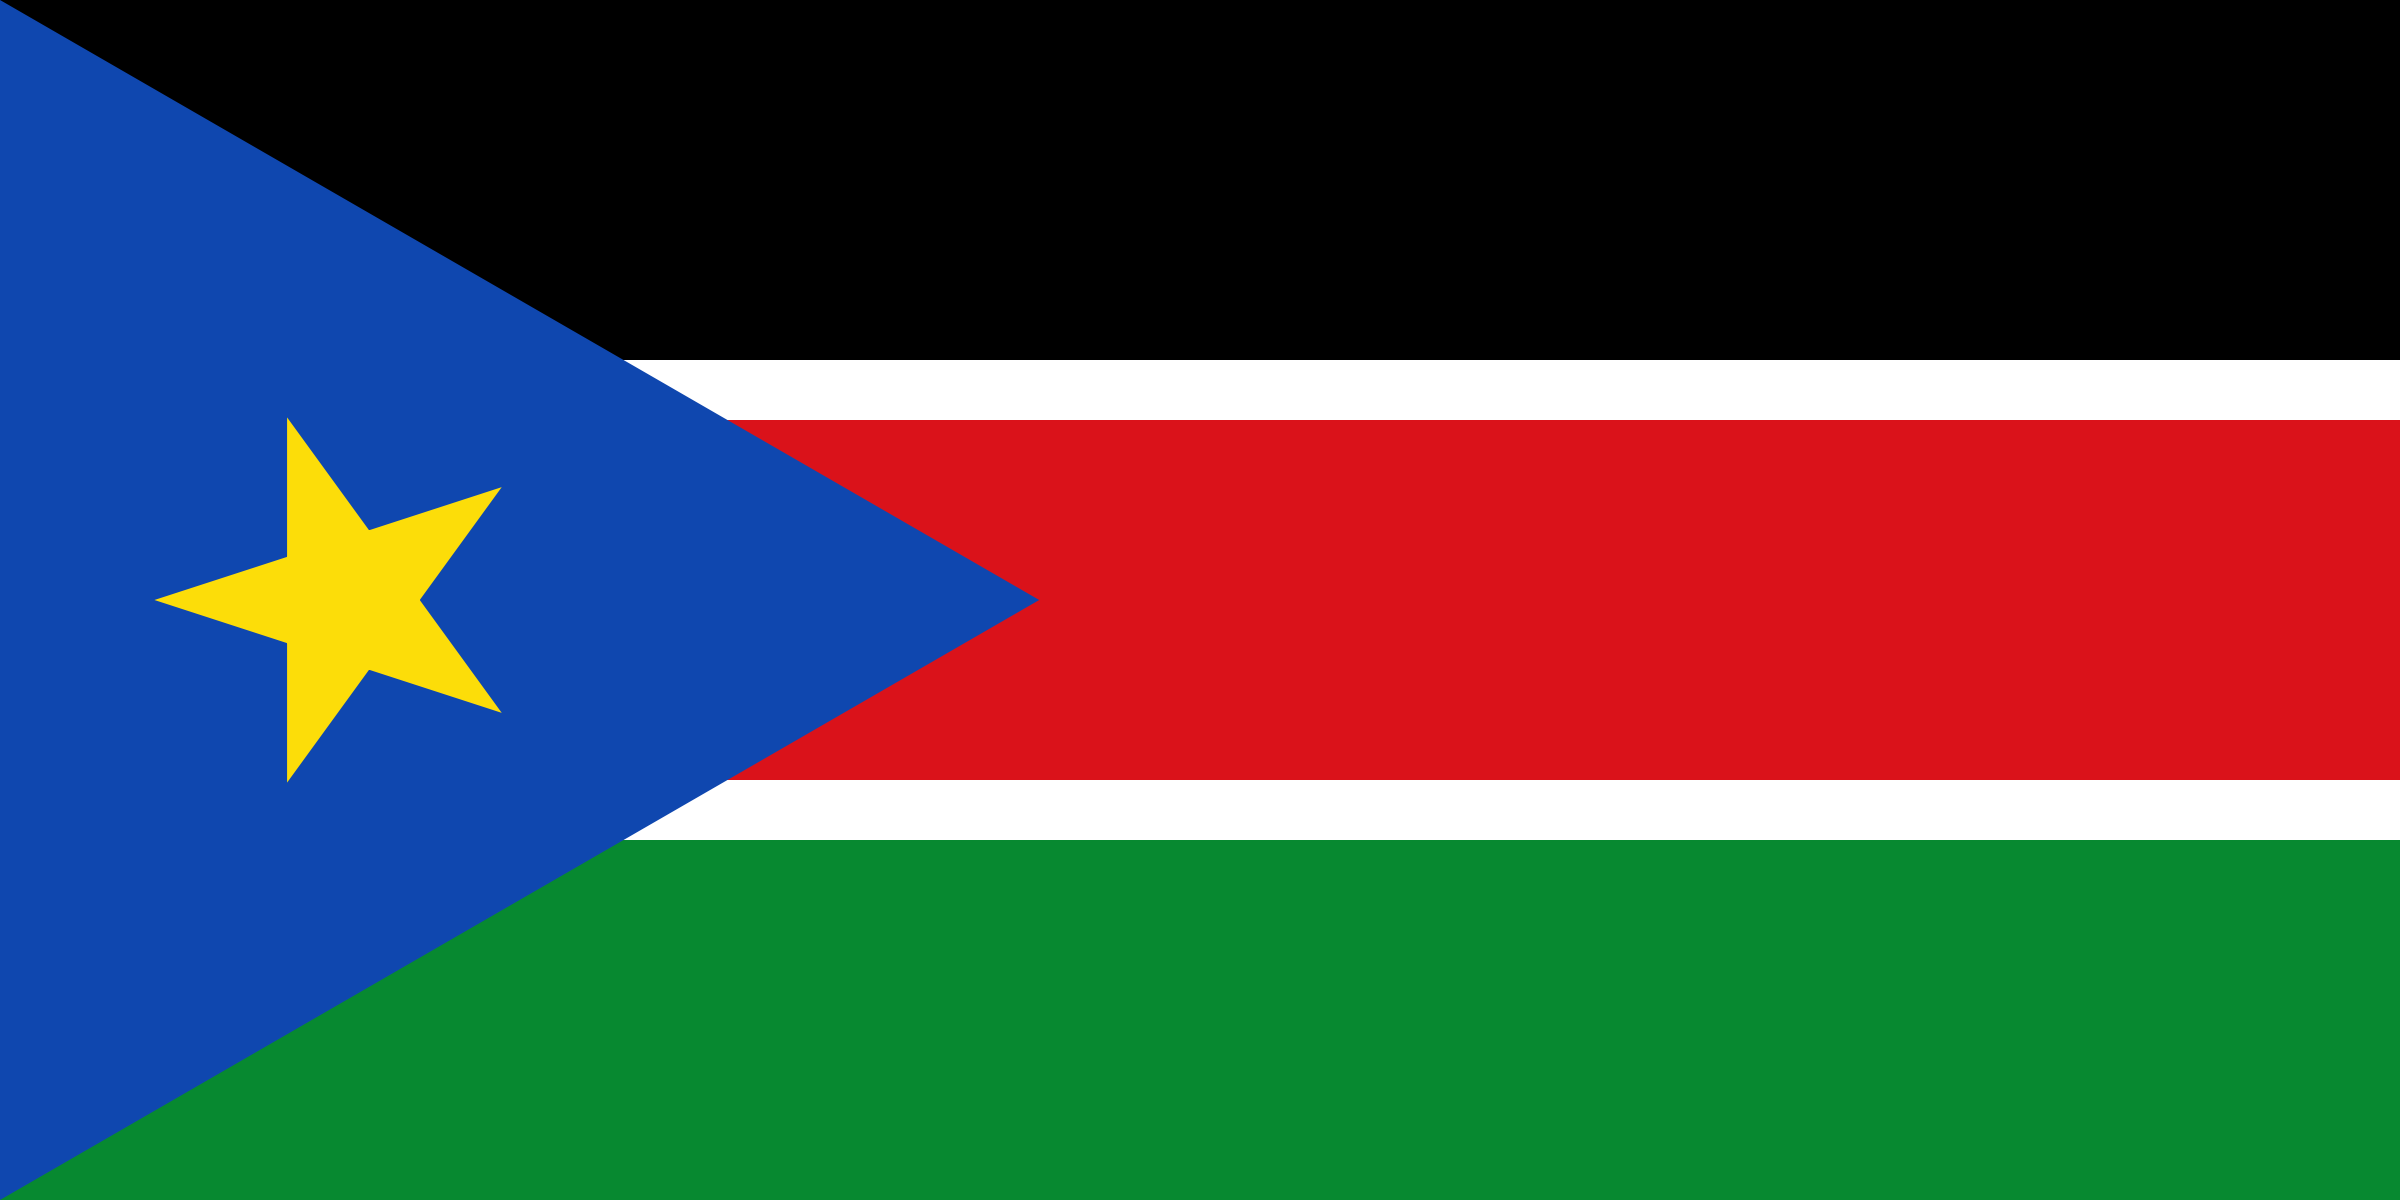 South Sudan flag by Clon